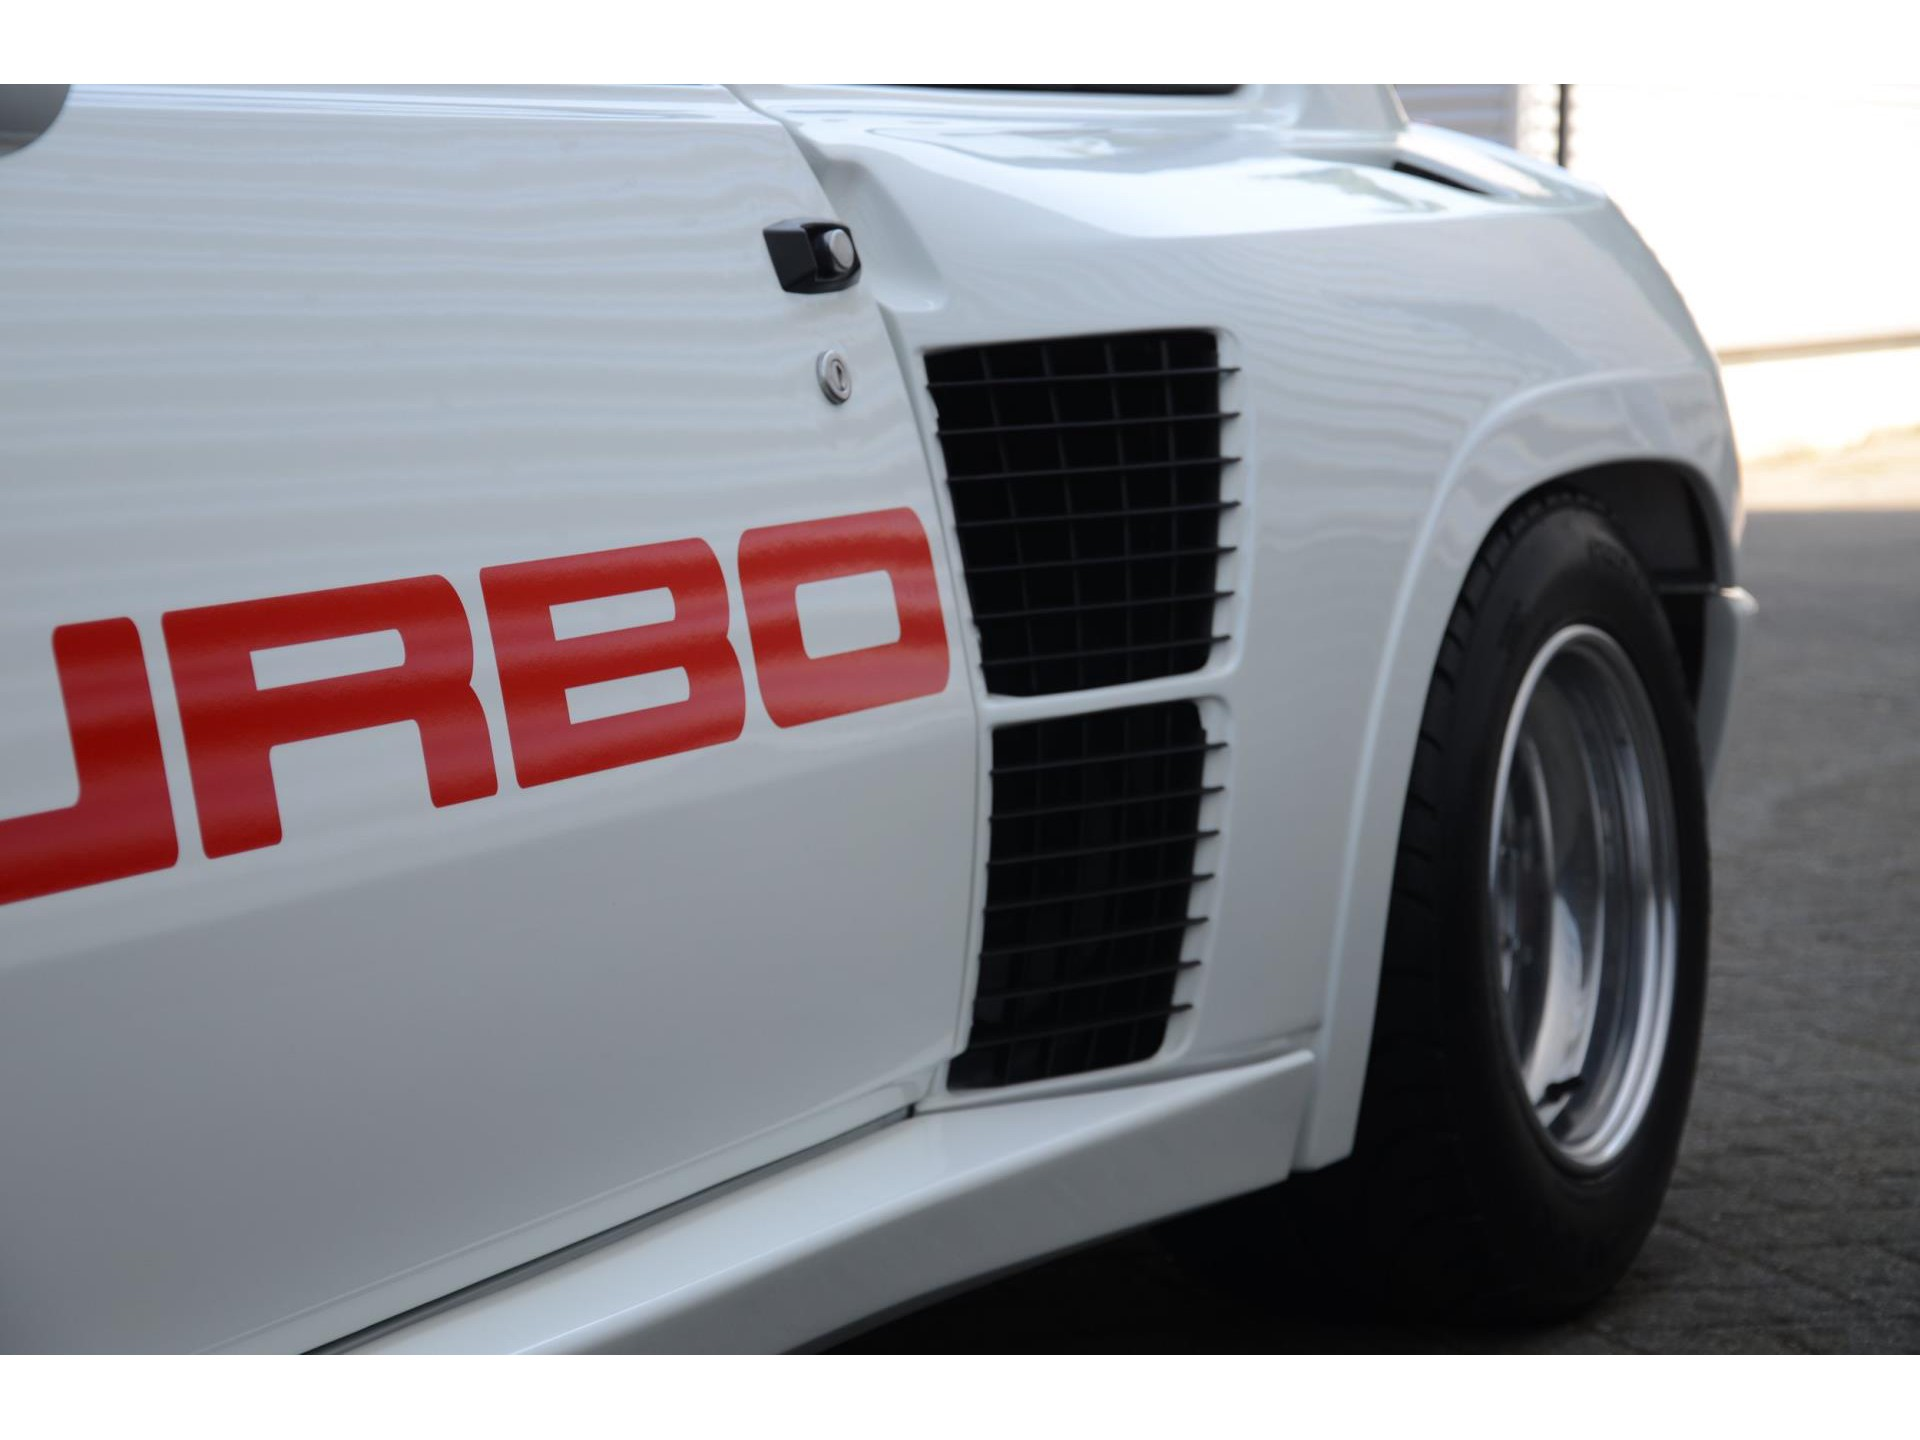 Renault-5-Turbo-Series-1-for-sale-62